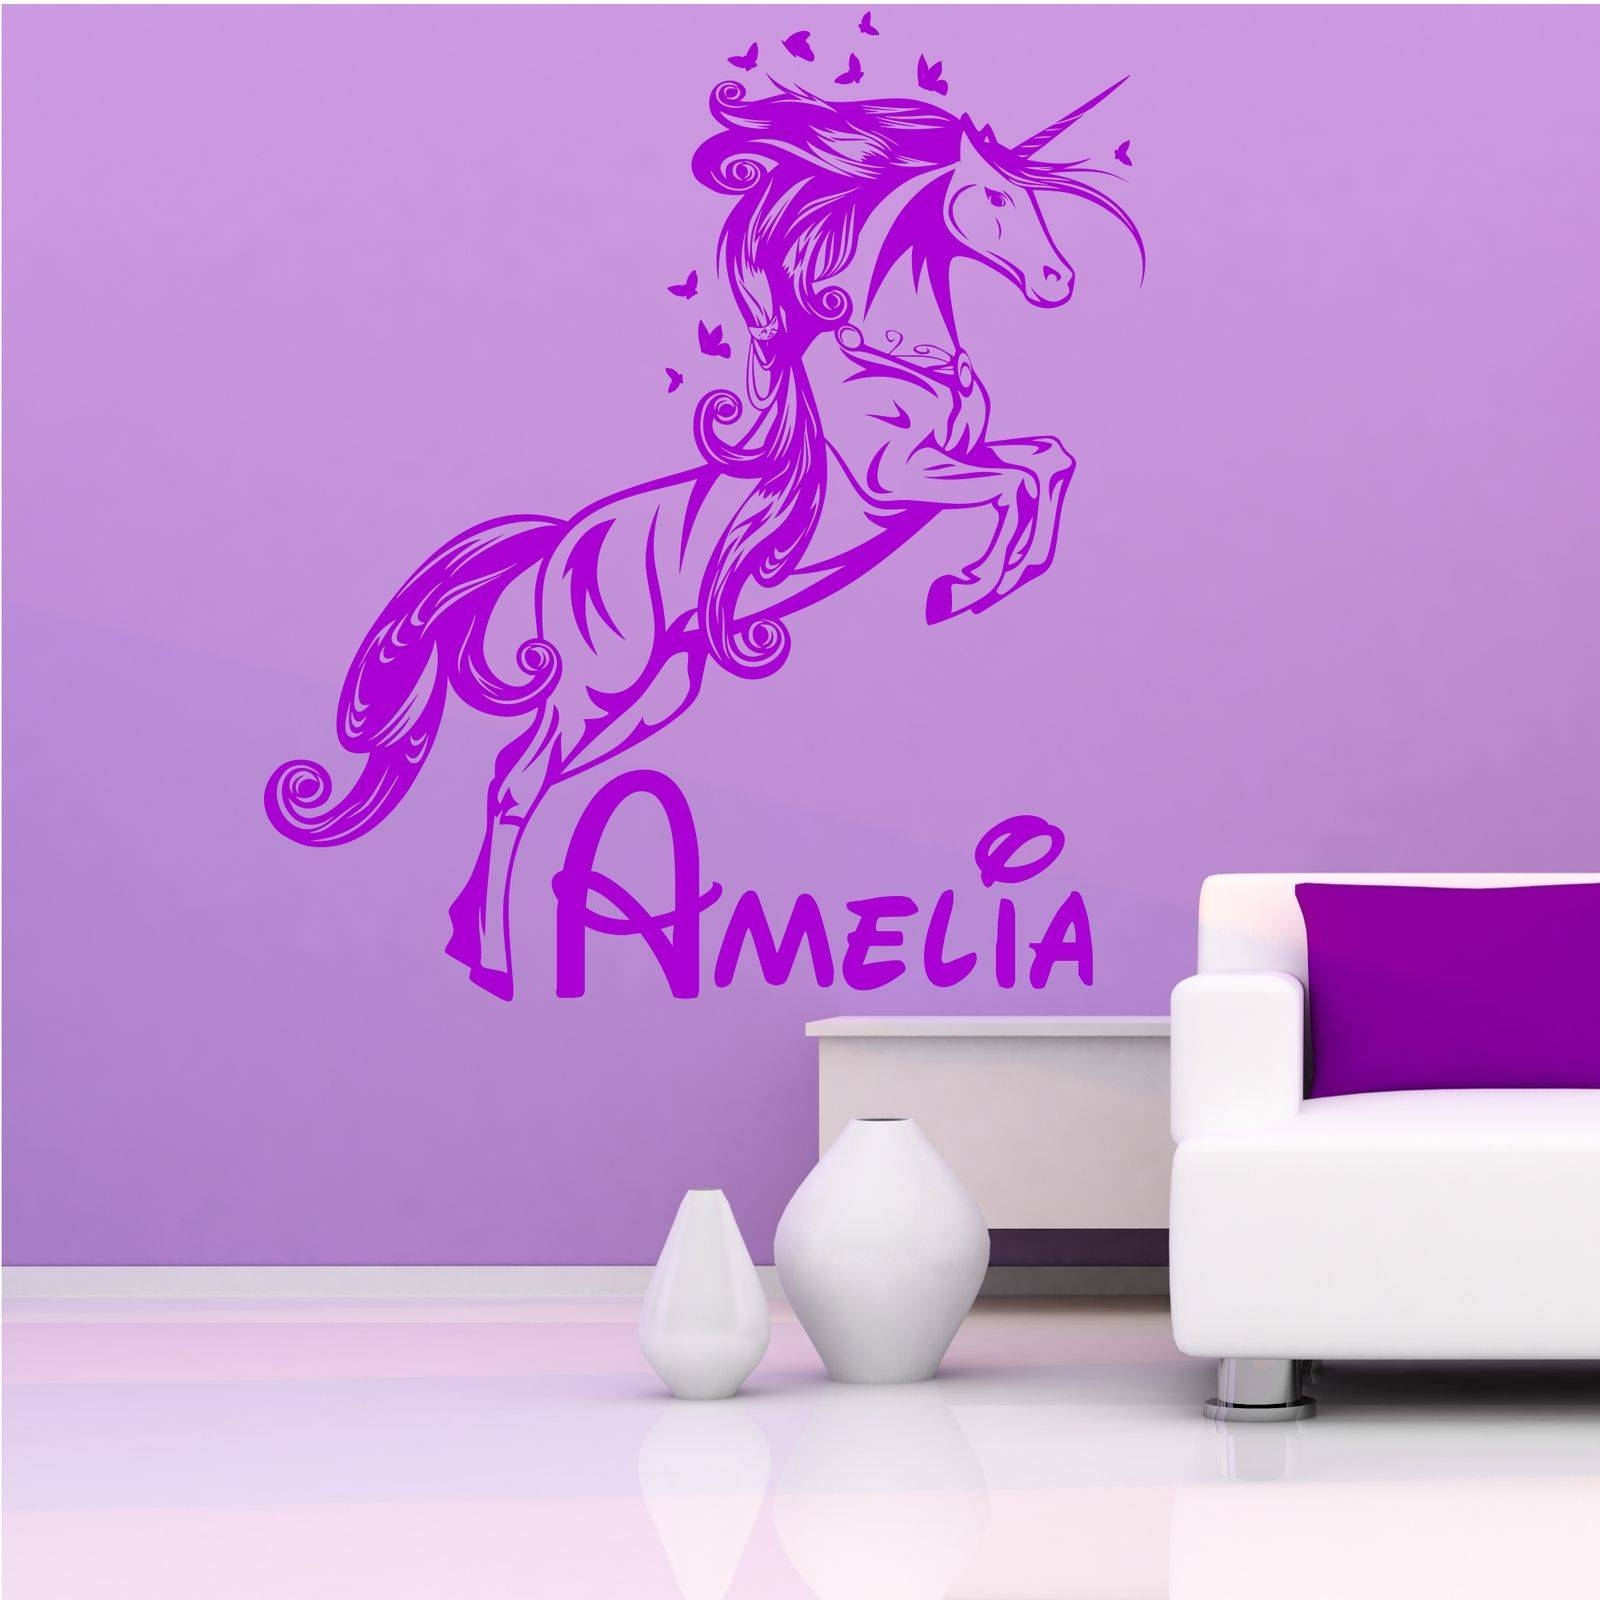 Personalised Unicorn Princess Name Wall Art Sticker Stencil Decal Pertaining To Recent Wall Art For Girls (View 16 of 20)